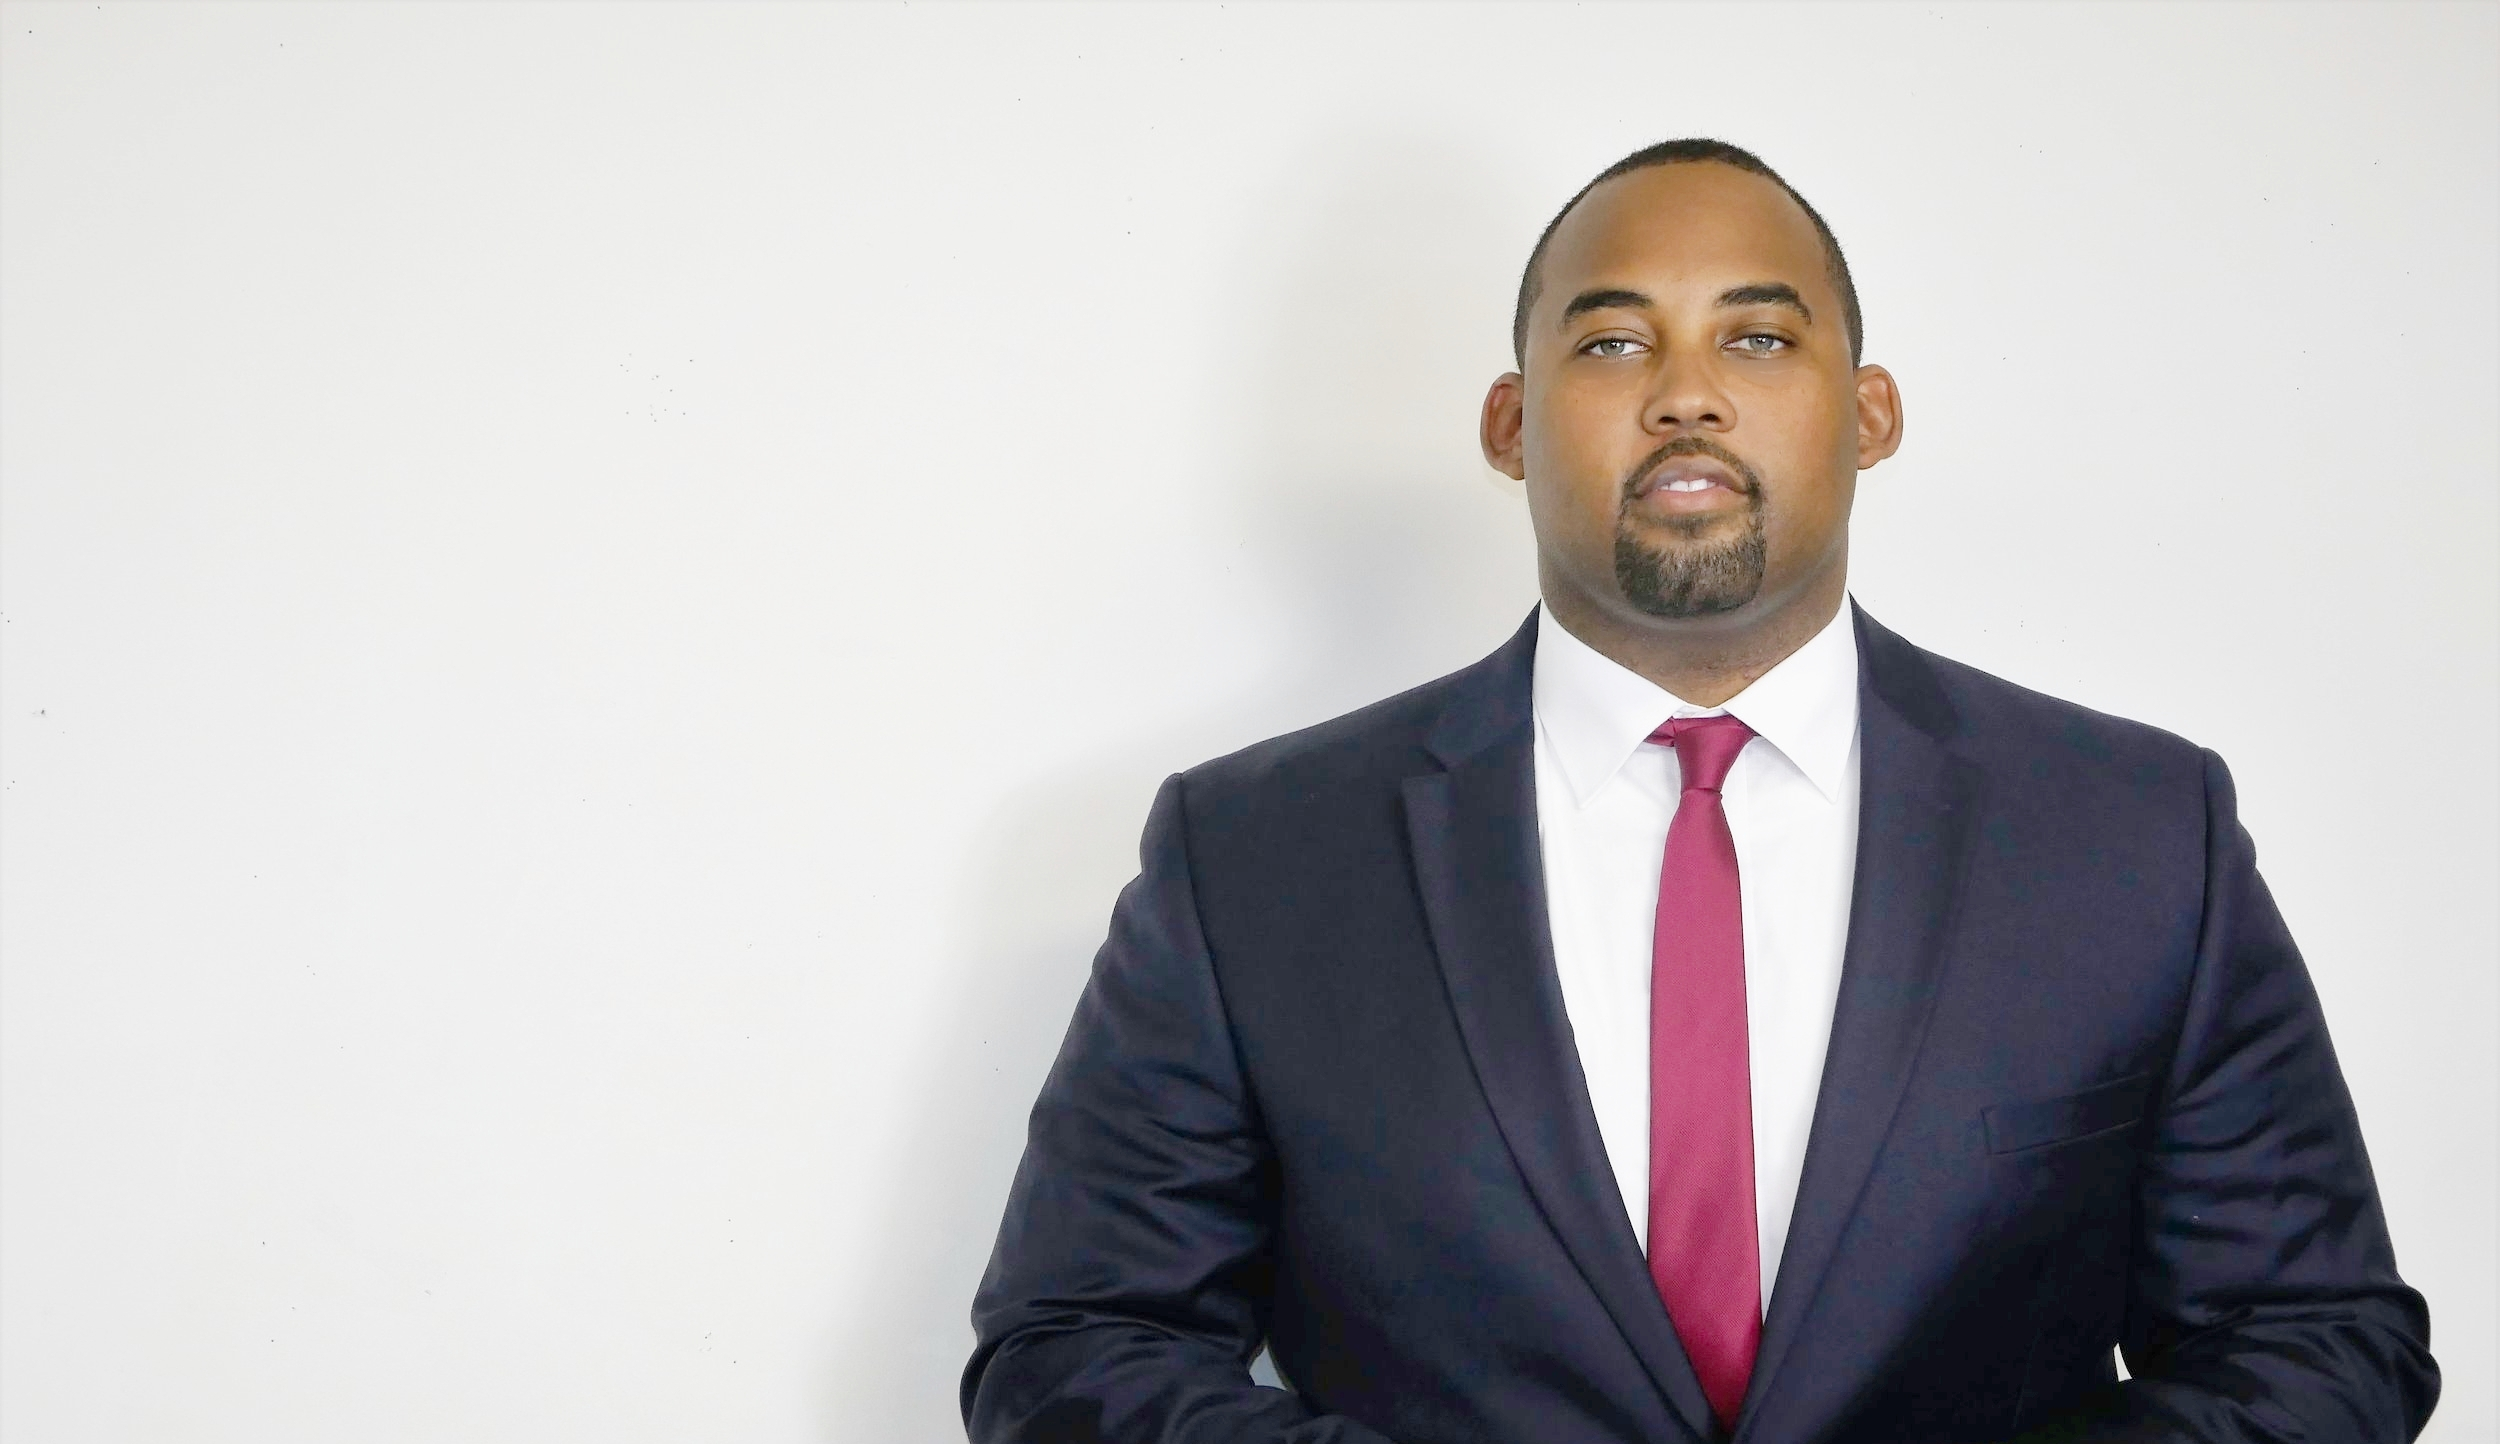 Atty. Dr. Phillip M. Robinson - Managing- AttorneyEducationSOUTHERN UNIVERSITY LAW CENTERJuris Doctor, 2015SOUTHERN UNIVERSITY A&MB.A., Political Science, 2010Activities & Affiliations• LA State Bar Association, Member• Omega Psi Fraternity Inc.Bar Admissions• Louisiana